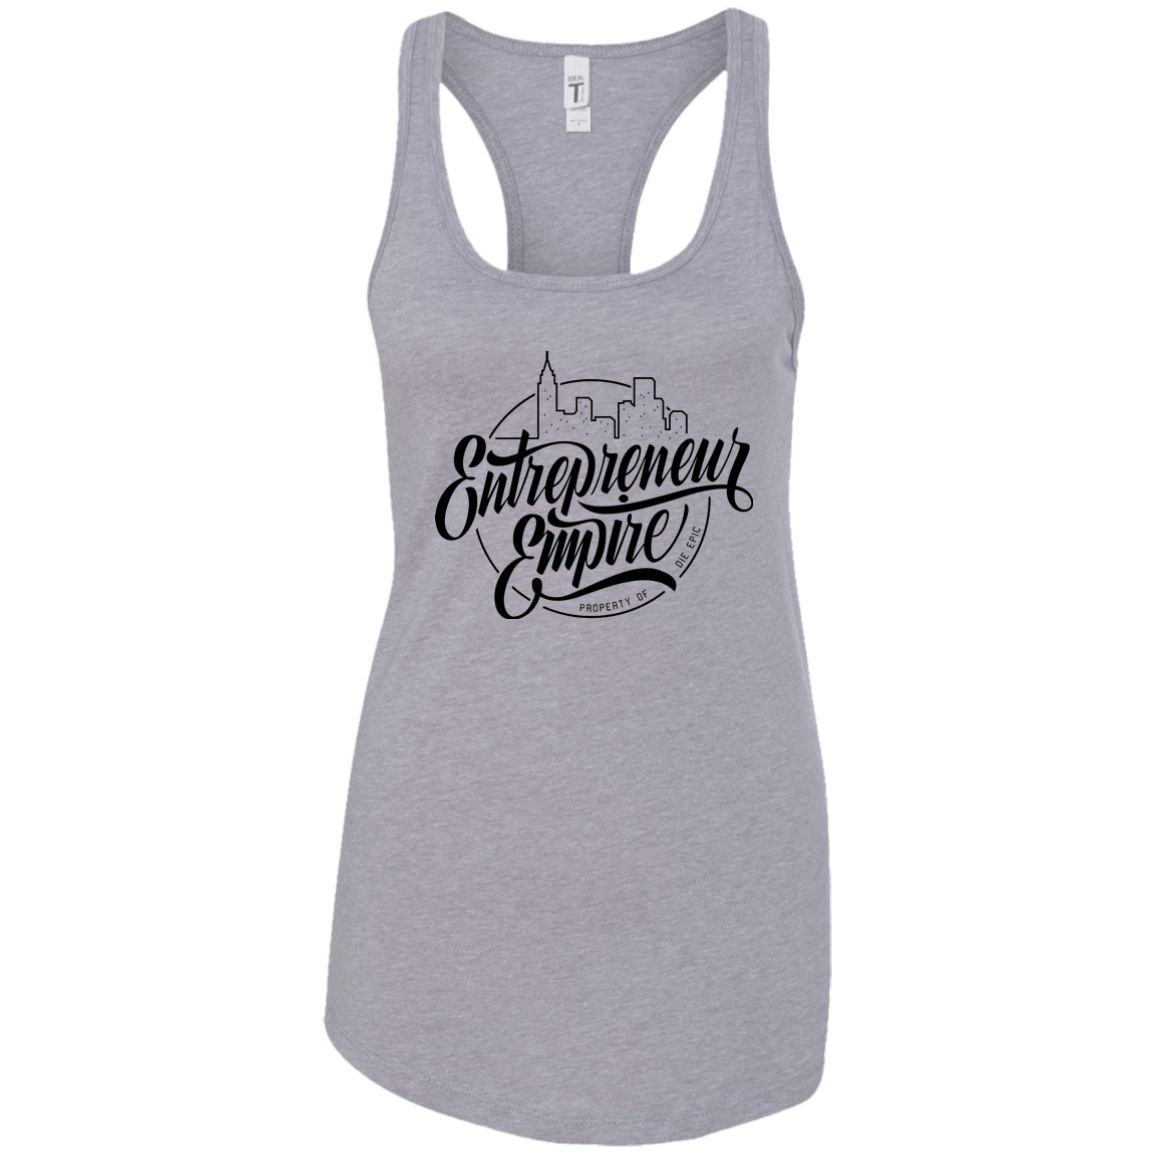 Entrepreneur Empire Ladies Racerback Tank | Entrepreneur Apparel & Gear | Entrepreneur Empire